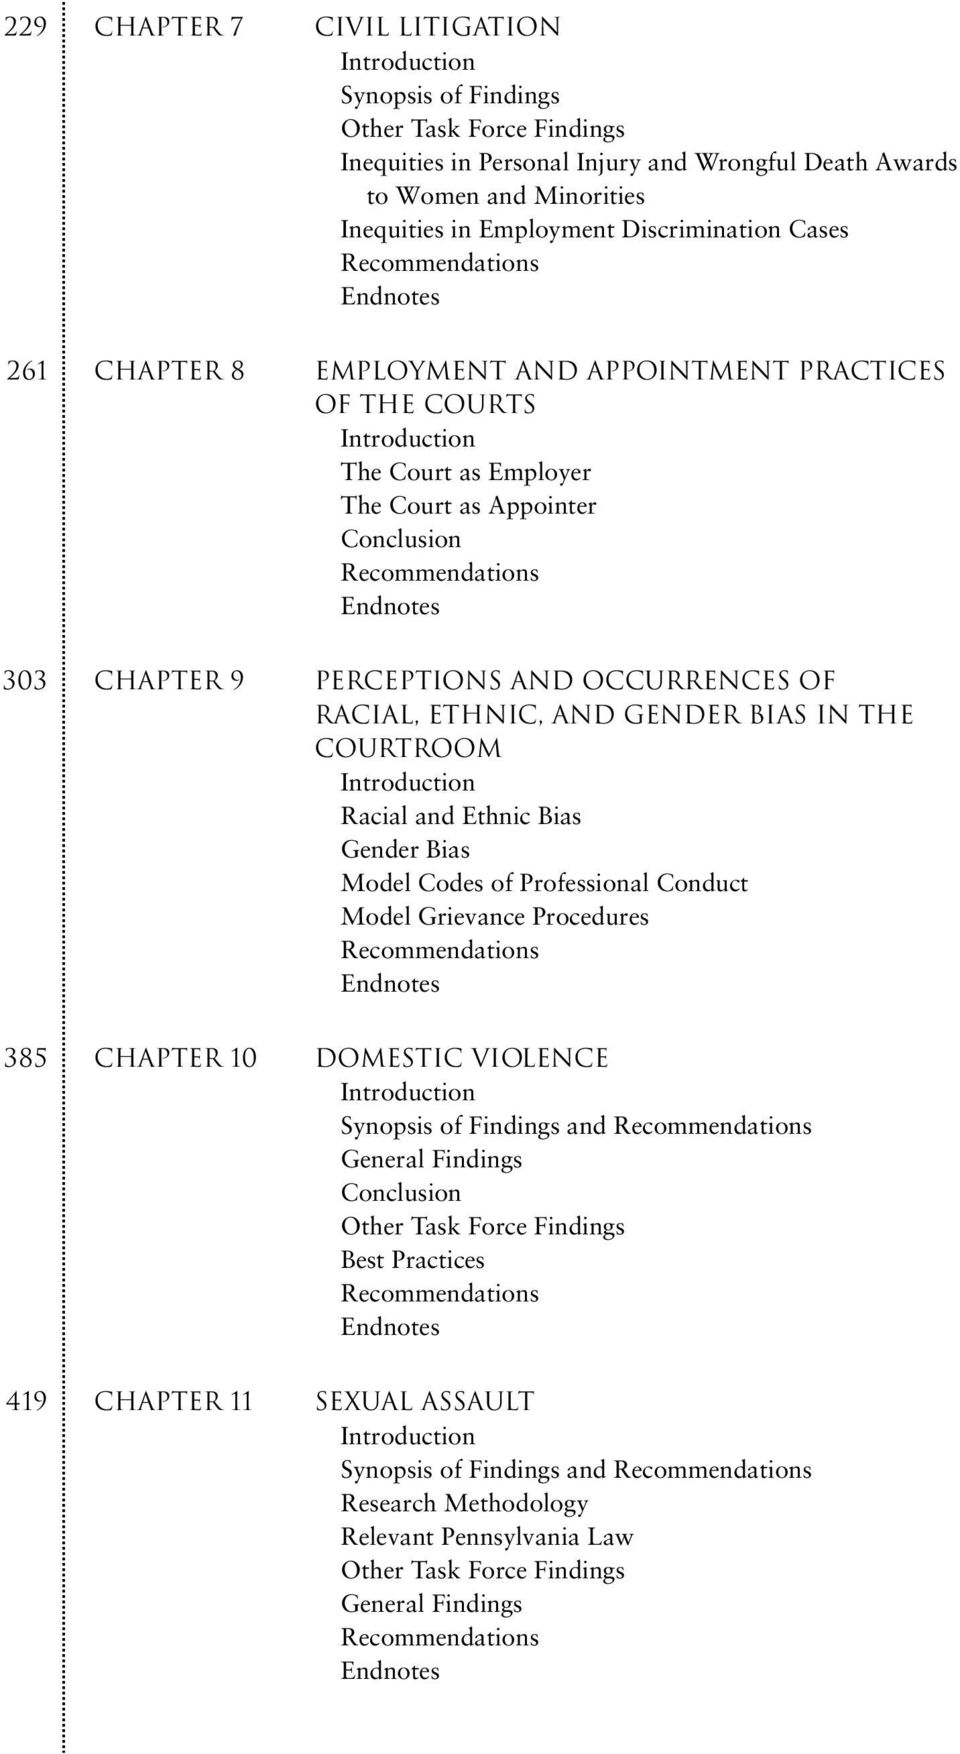 ETHNIC, AND GENDER BIAS IN THE COURTROOM Racial and Ethnic Bias Gender Bias Model Codes of Professional Conduct Model Grievance Procedures 385 CHAPTER 10 DOMESTIC VIOLENCE Synopsis of Findings and